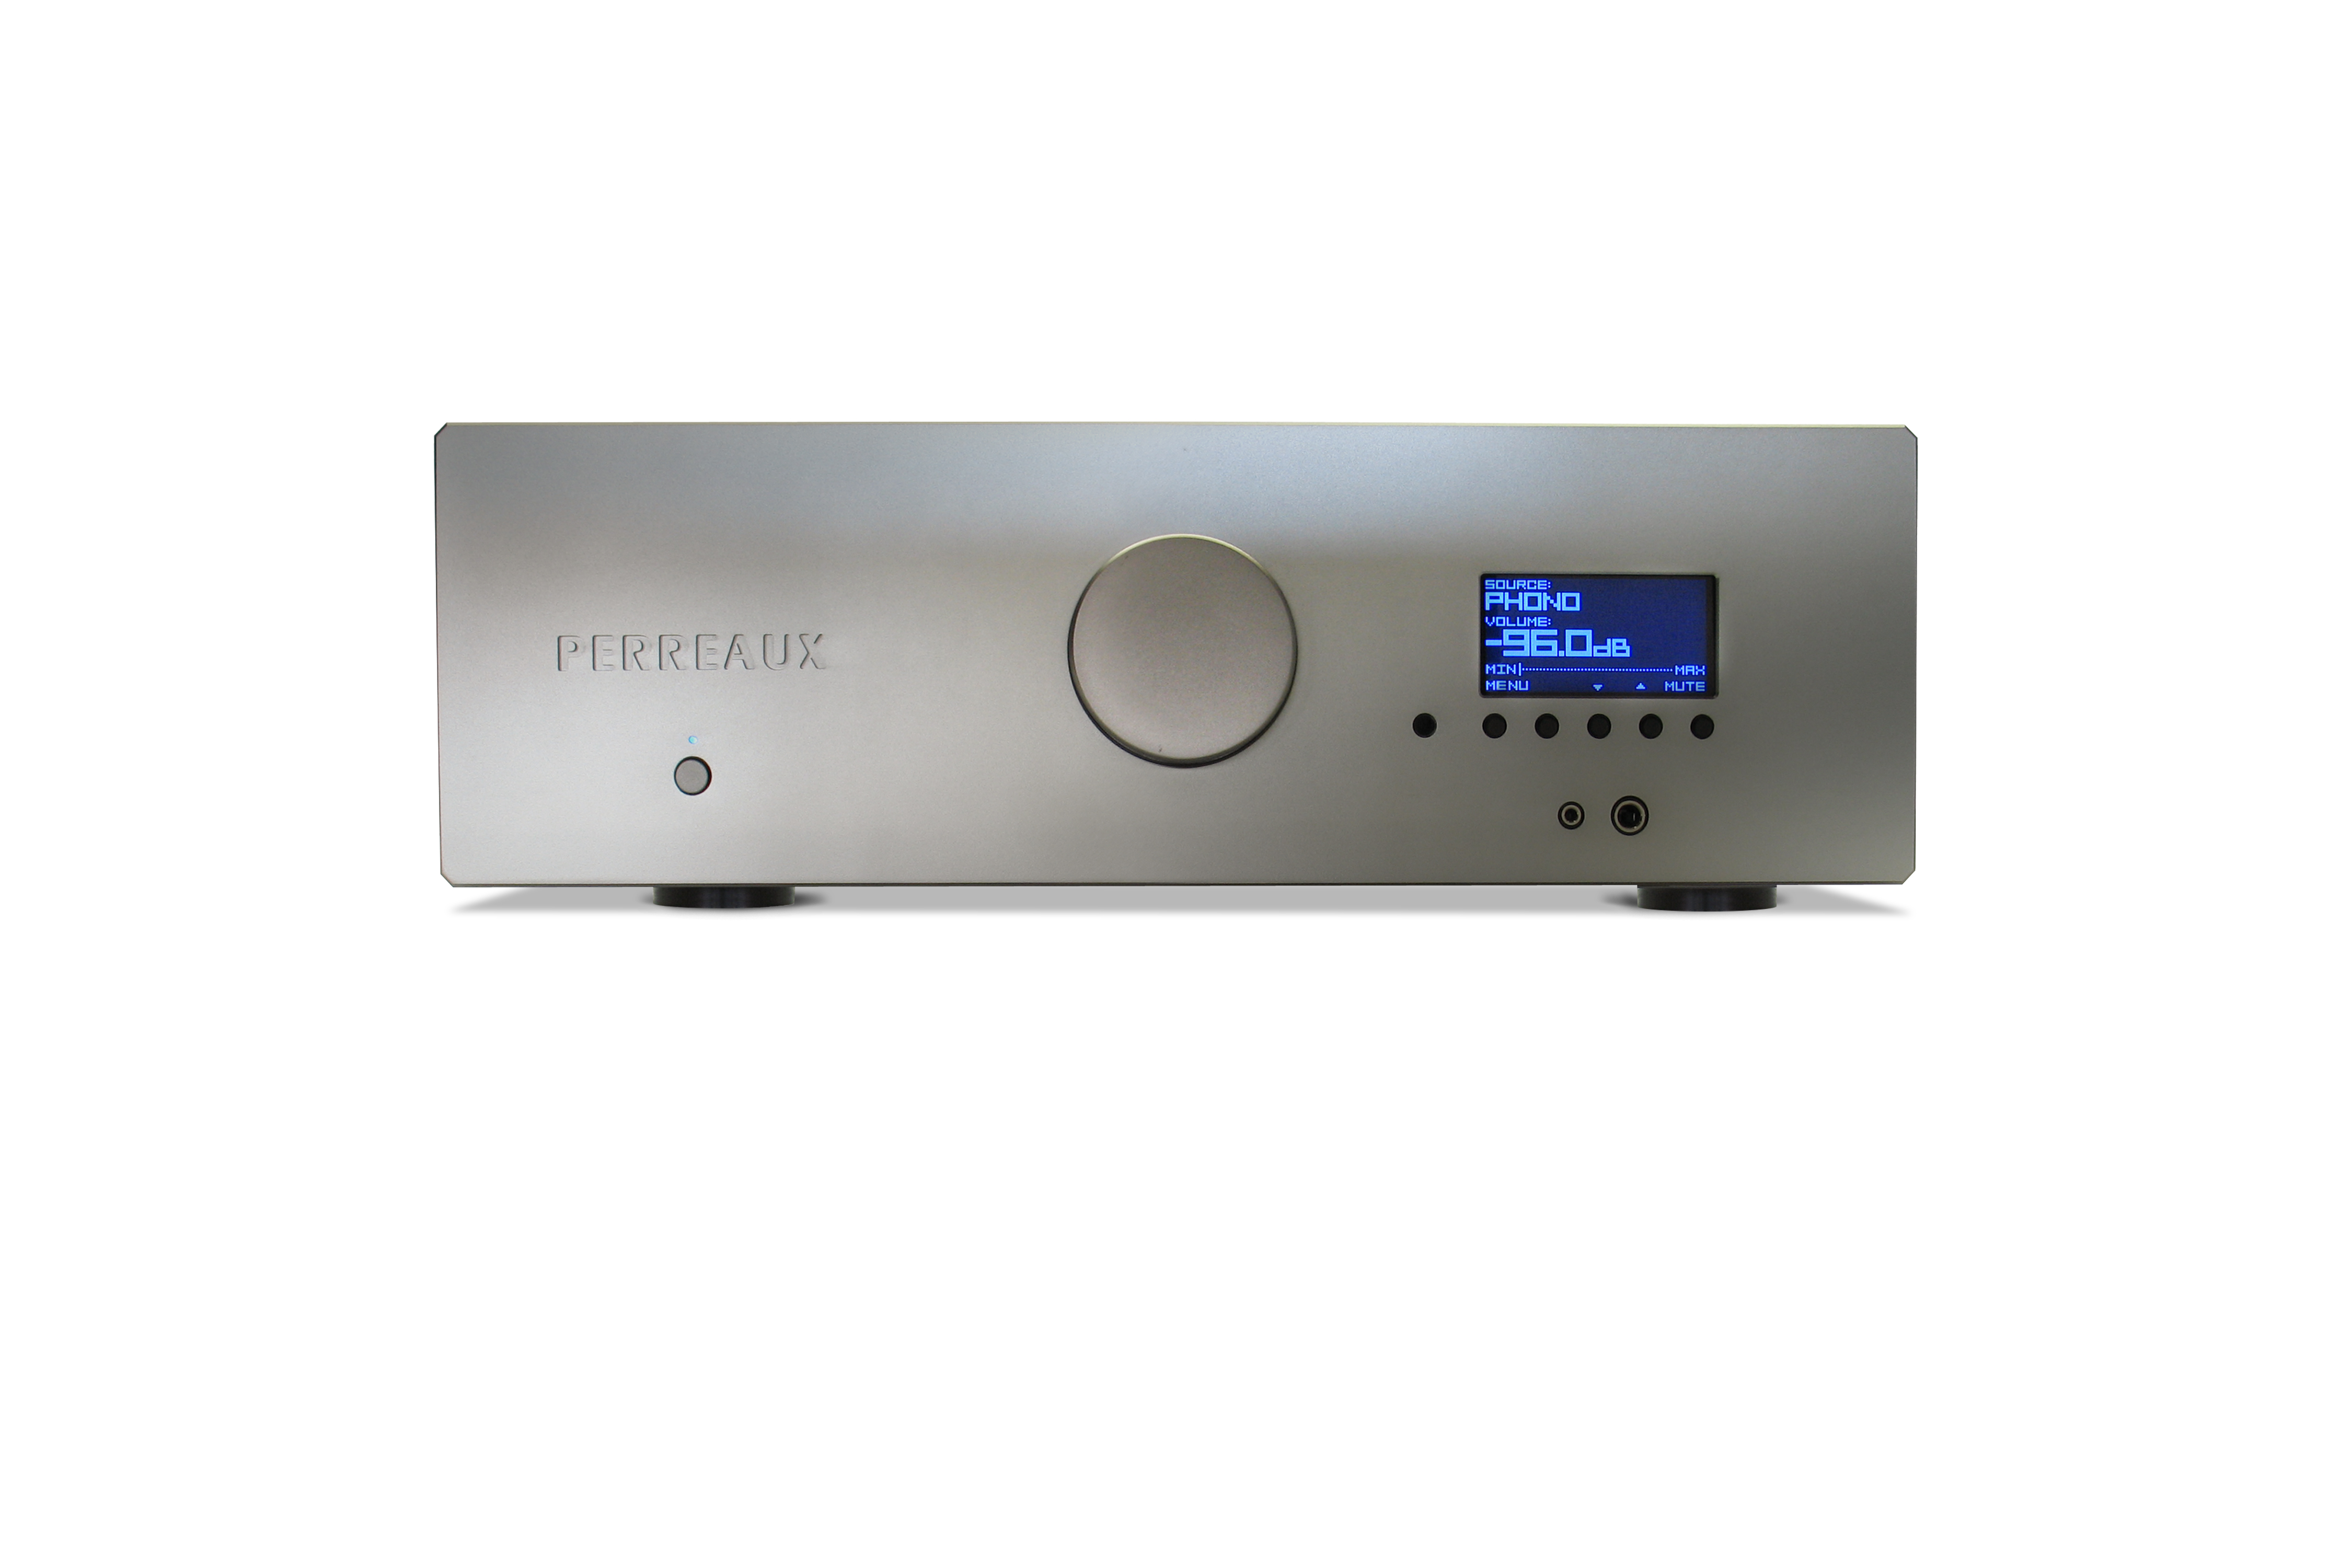 Perreaux Eloquence 250i